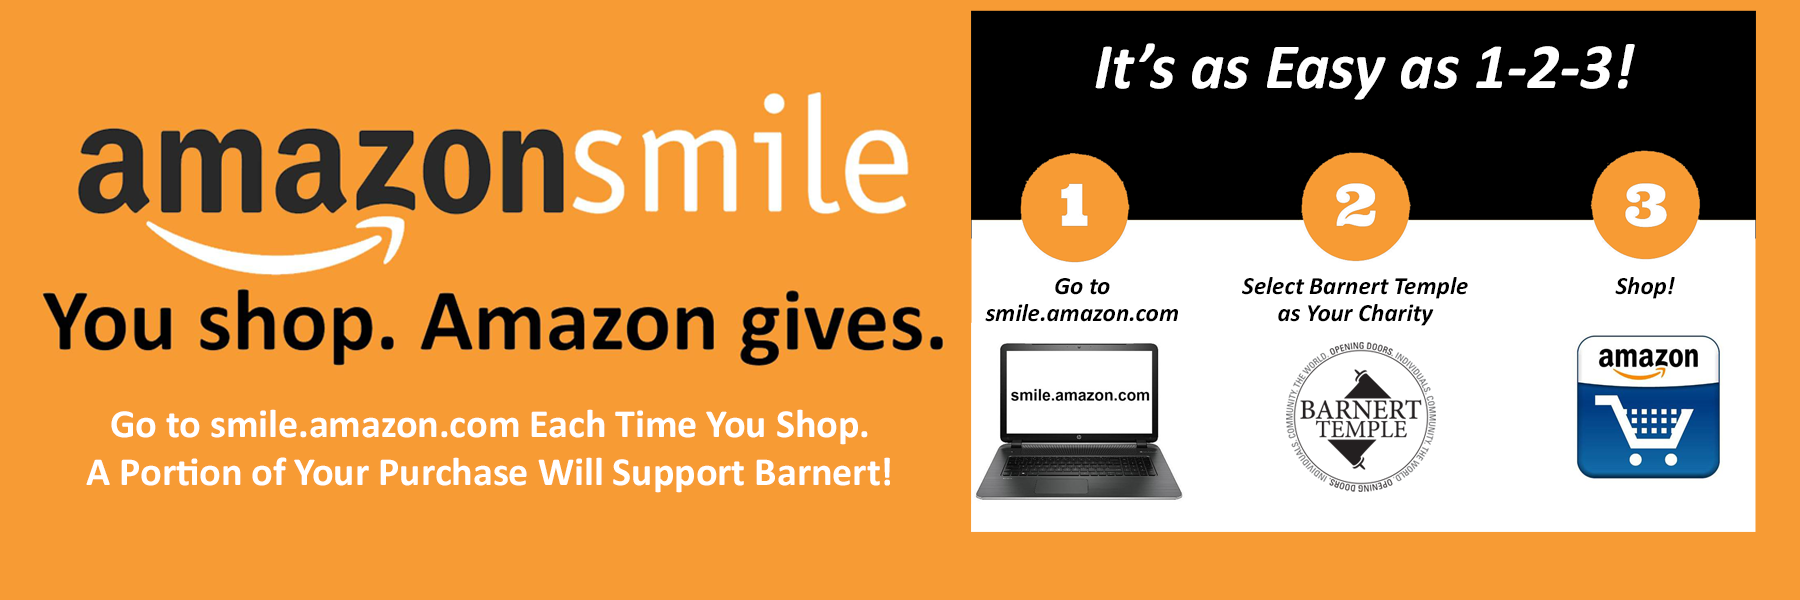 """<a href=""""https://www.barnerttemple.org/amazonsmile""""                                     target="""""""">                                                                 <span class=""""slider_title"""">                                     You Shop and Barnert Earns!                                </span>                                                                 </a>                                                                                                                                                                                       <span class=""""slider_description"""">Simply sign up and go to smile.amazon.com whenever you shop at Amazon.  Barnert will earn a percentage of your purchases.  Set it up and forget about it.  It's really that easy!  Click above for details.</span>"""